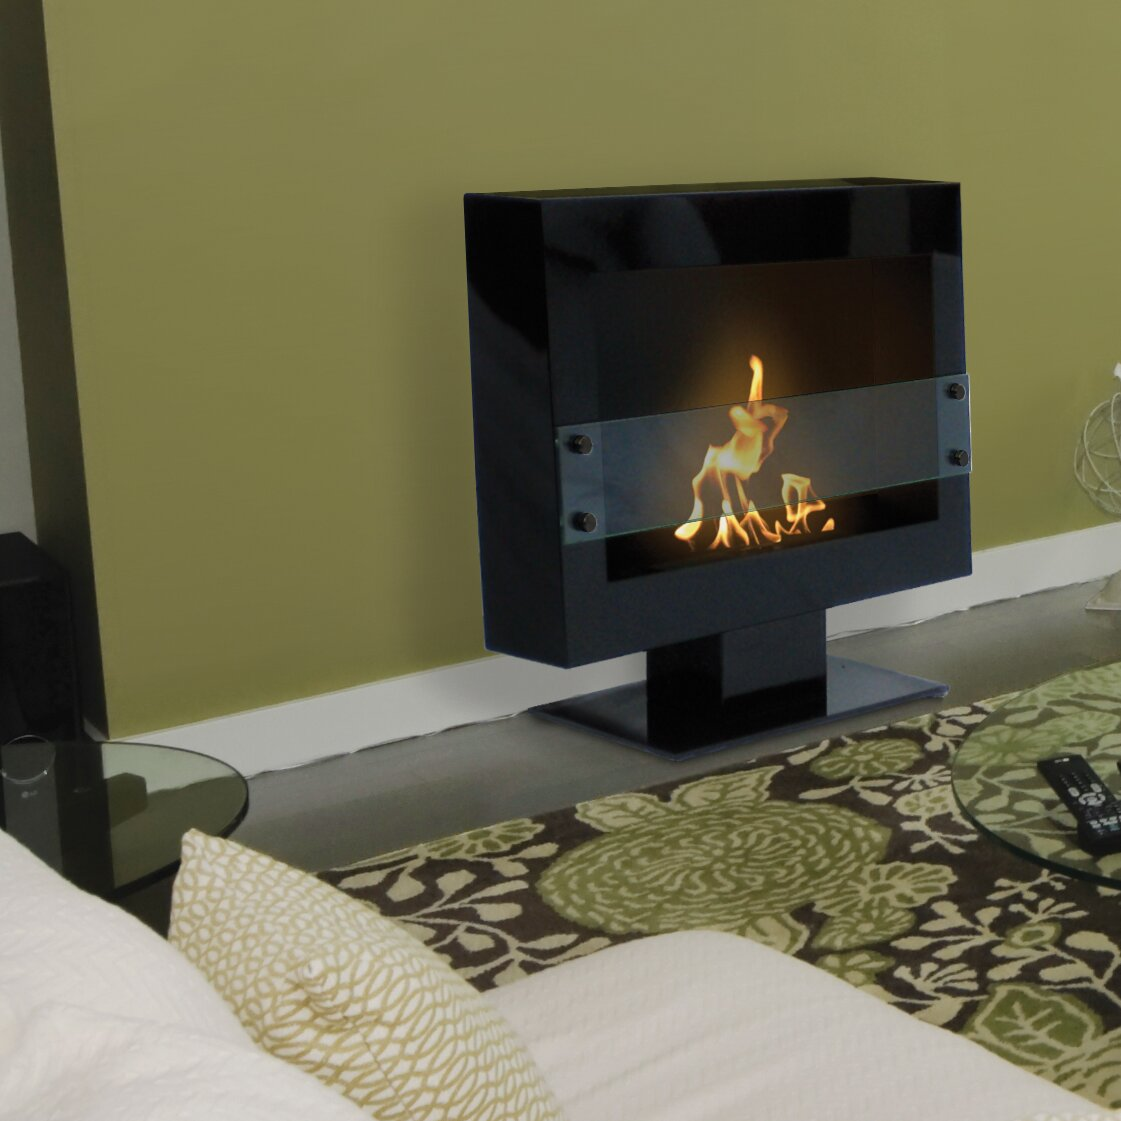 Anywhere Fireplace Tribeca Free Standing Bio-Ethanol Fireplace - Anywhere Fireplace Tribeca Free Standing Bio-Ethanol Fireplace